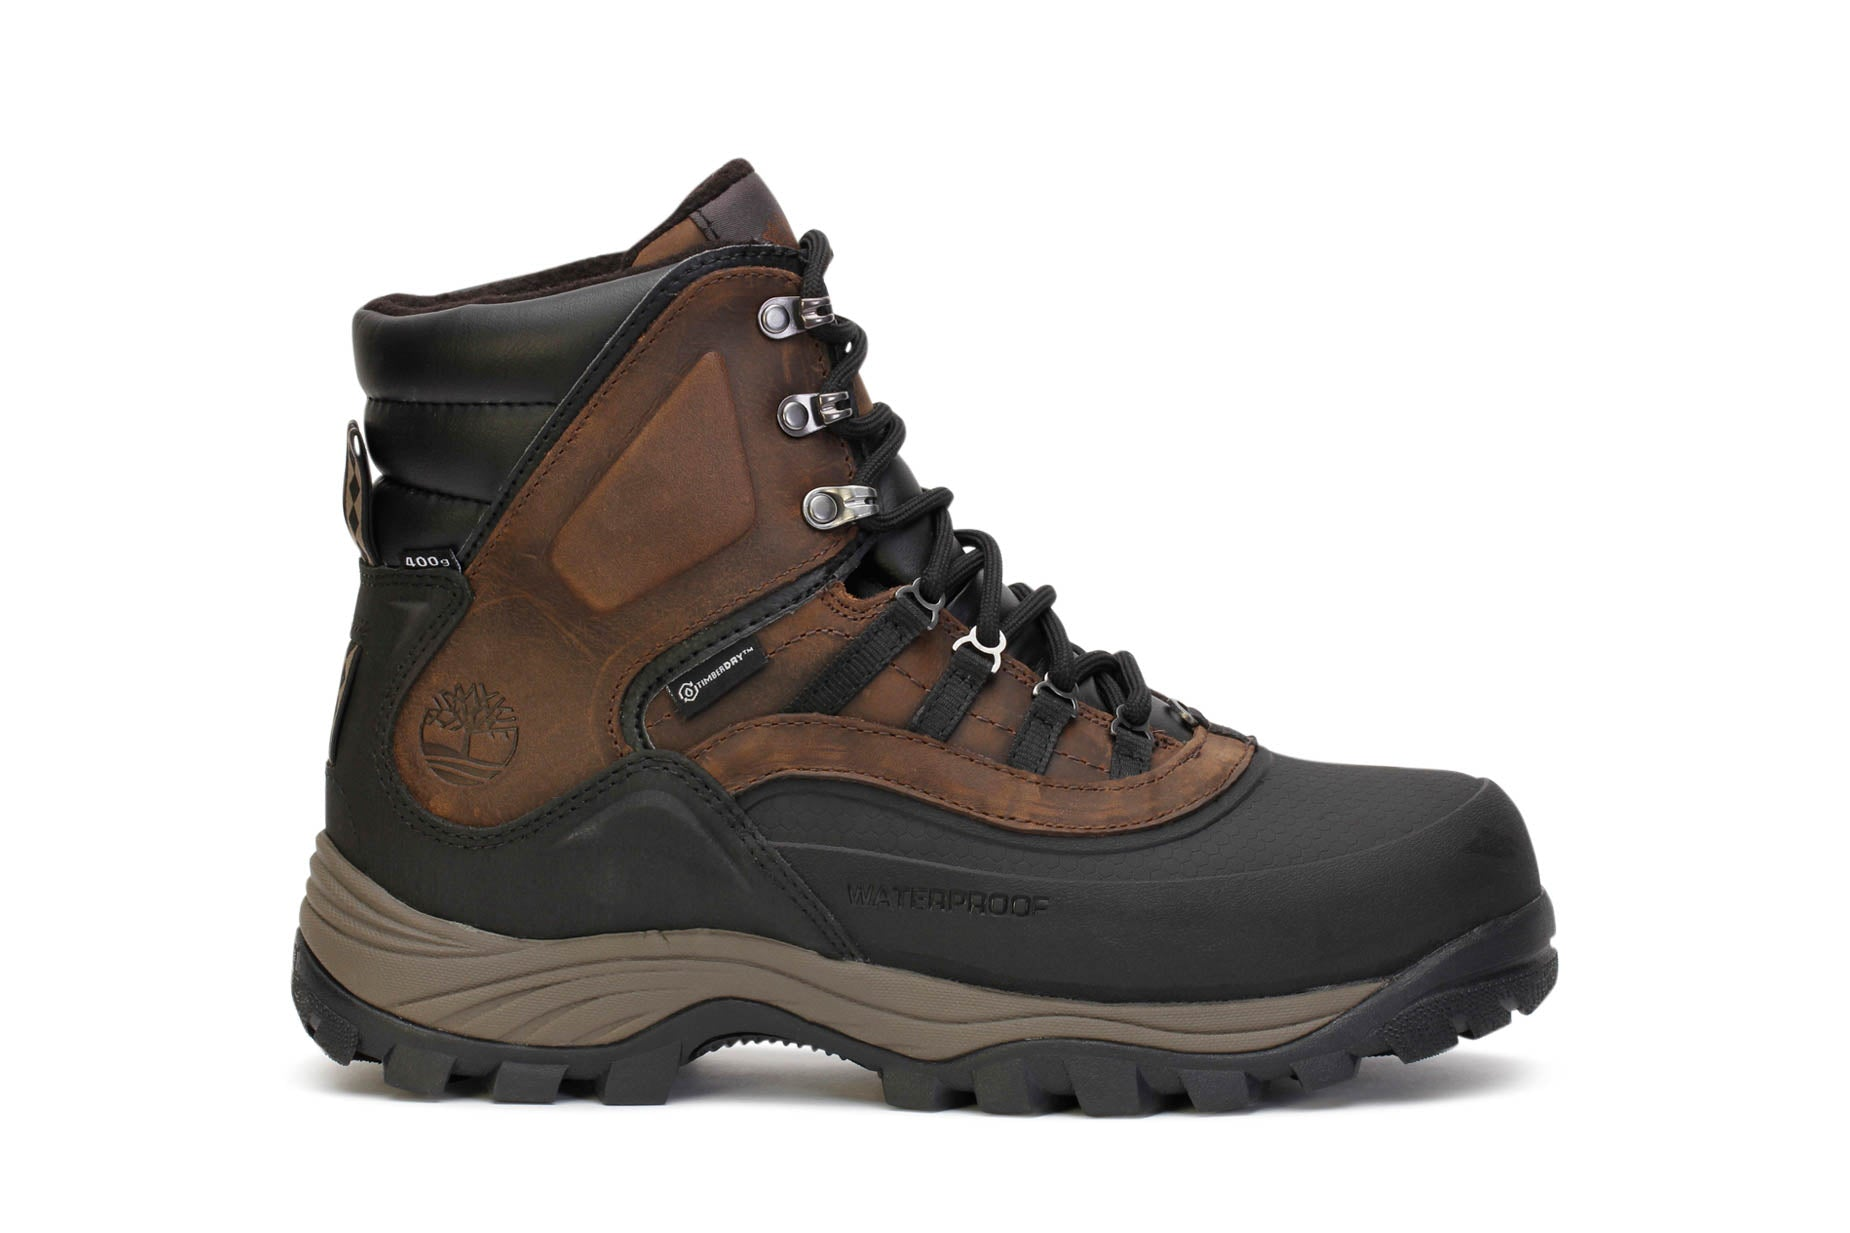 timberland-mens-chocoura-shell-toe-waterproof-boots-dk-brown-brown-a1qkmd-main